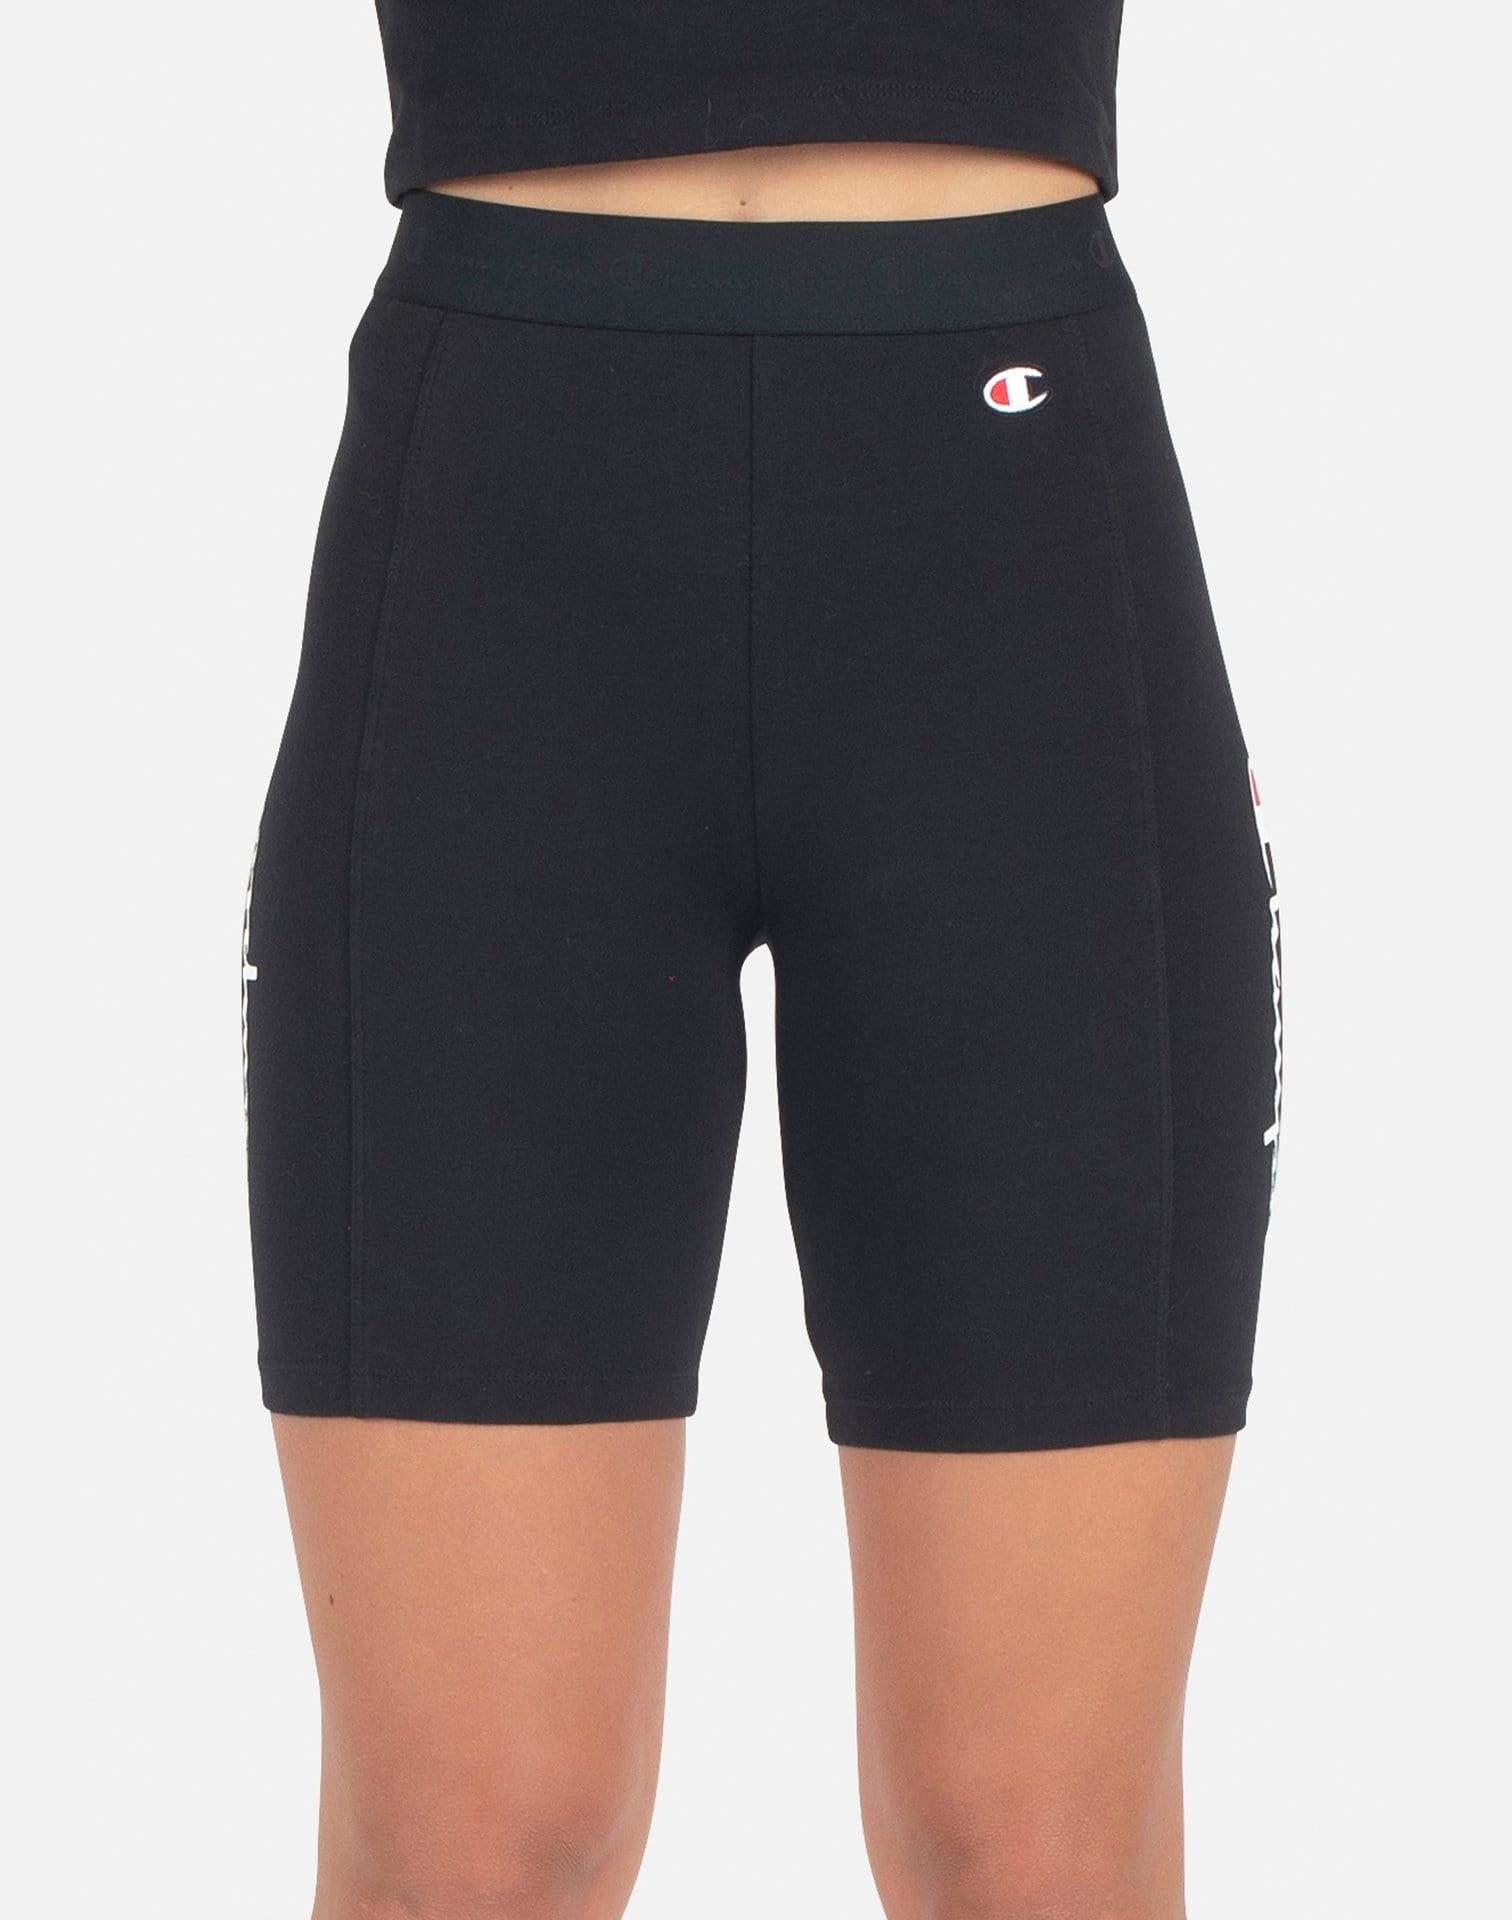 Champion Women's Everyday Bike Shorts